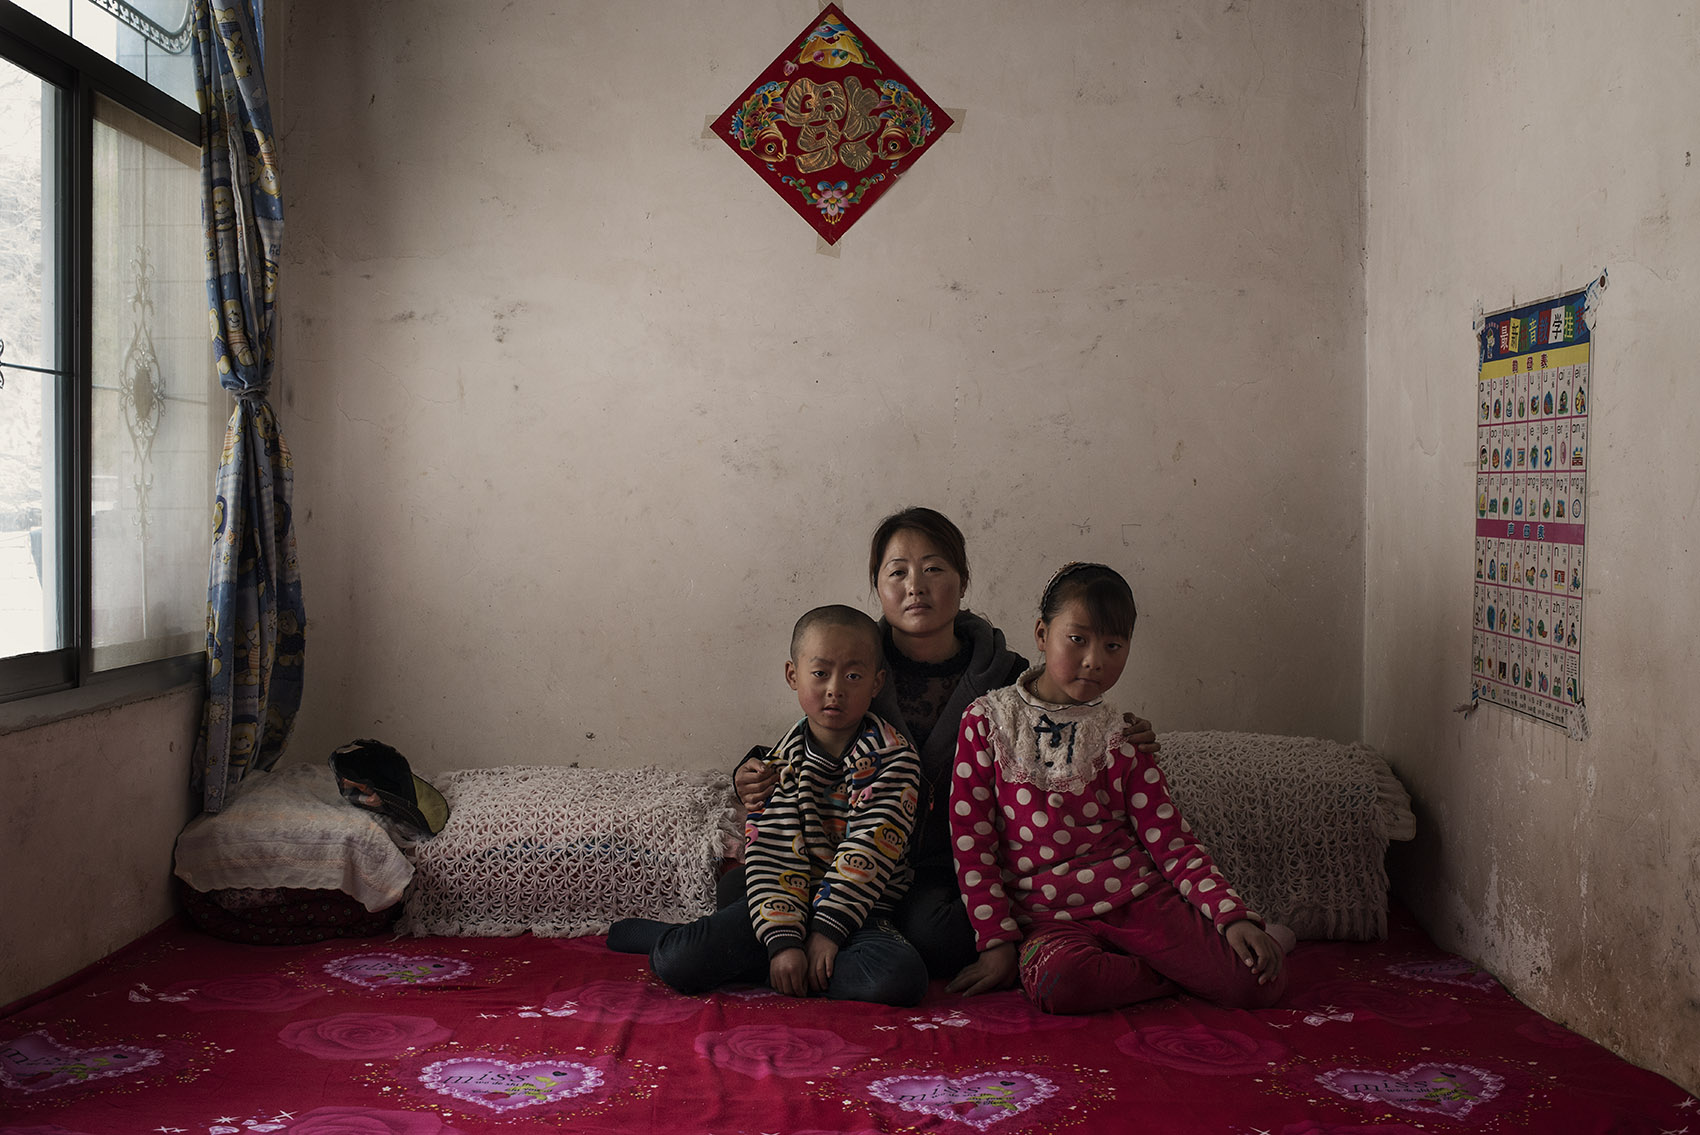 Jinshan Village Chen Xiuling (32) years old with her two children He Yawen (9) and He Guanghui (6) Chen's husband is a migrant worker in the South of Gansu 4 hours by bus from the family home. He sets up electric lines in the countryside and comes back home every two months. They builta new house a year ago. She says the old house was warmer (the old house was made of adobe while the new one has concrete floors and walls)but she is still happy with the new one. The construction of the house is not finished so for now they areliving in the smaller room. She met her husband in Lanzhou (the capital city of Gansu province) where they were both migrant workers. She subsequently moved to her husband's village where she is taking care of theirchildren.